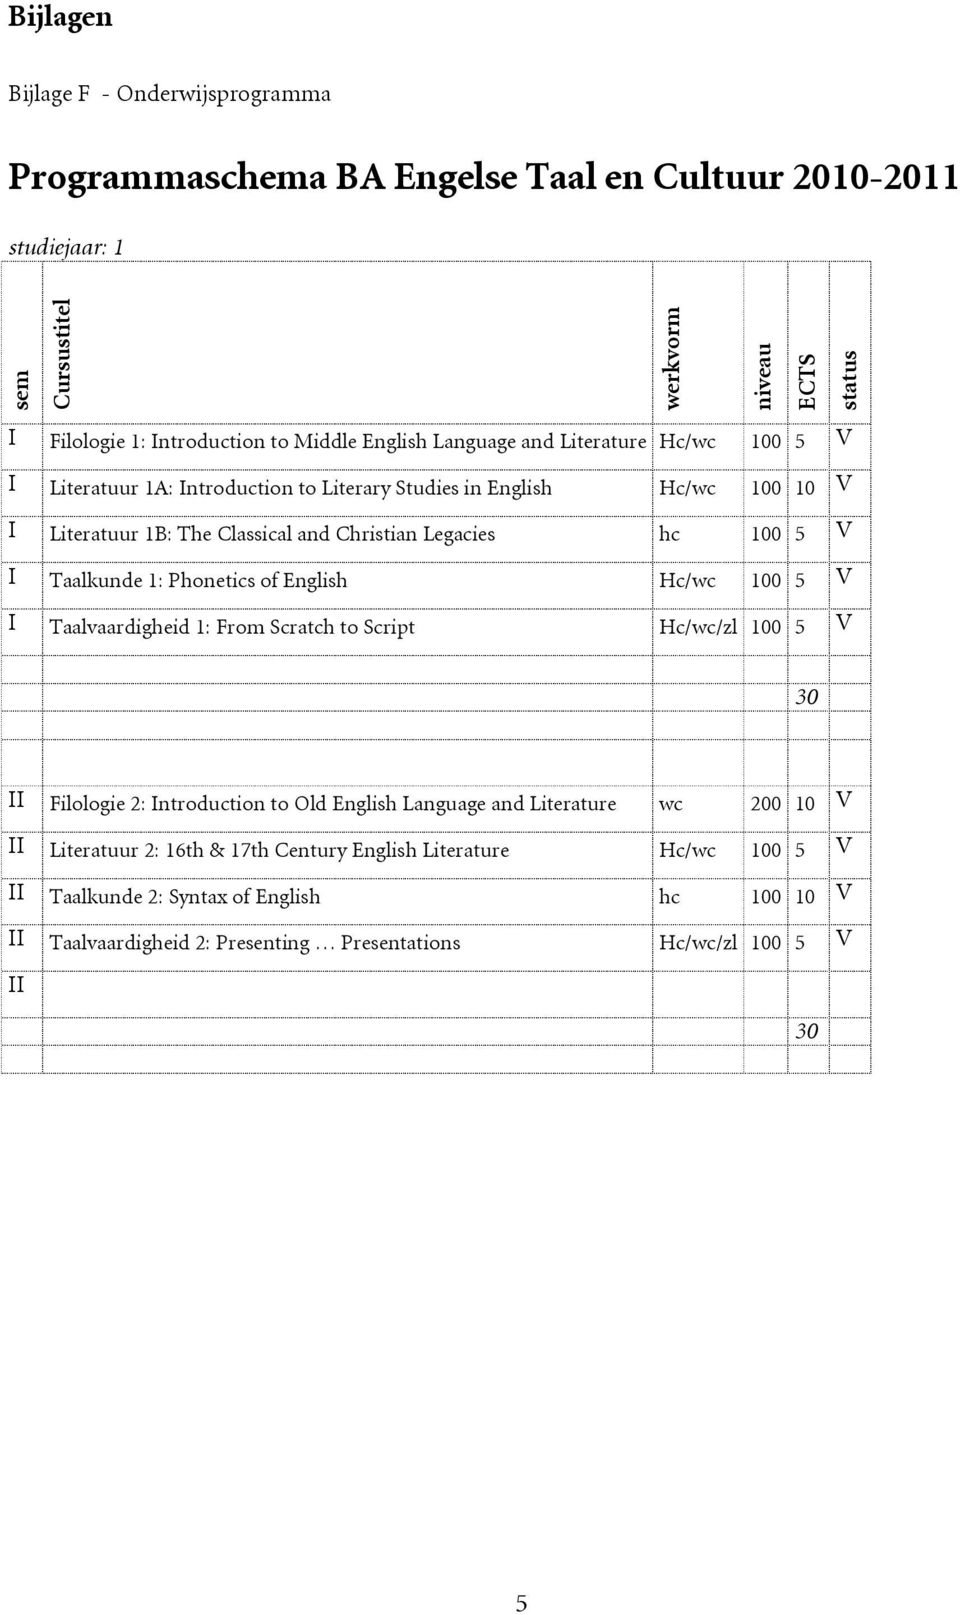 100 5 V I Taalkunde 1: Phonetics of English Hc/wc 100 5 V I Taalvaardigheid 1: From Scratch to Script Hc/wc/zl 100 5 V II Filologie 2: Introduction to Old English Language and Literature